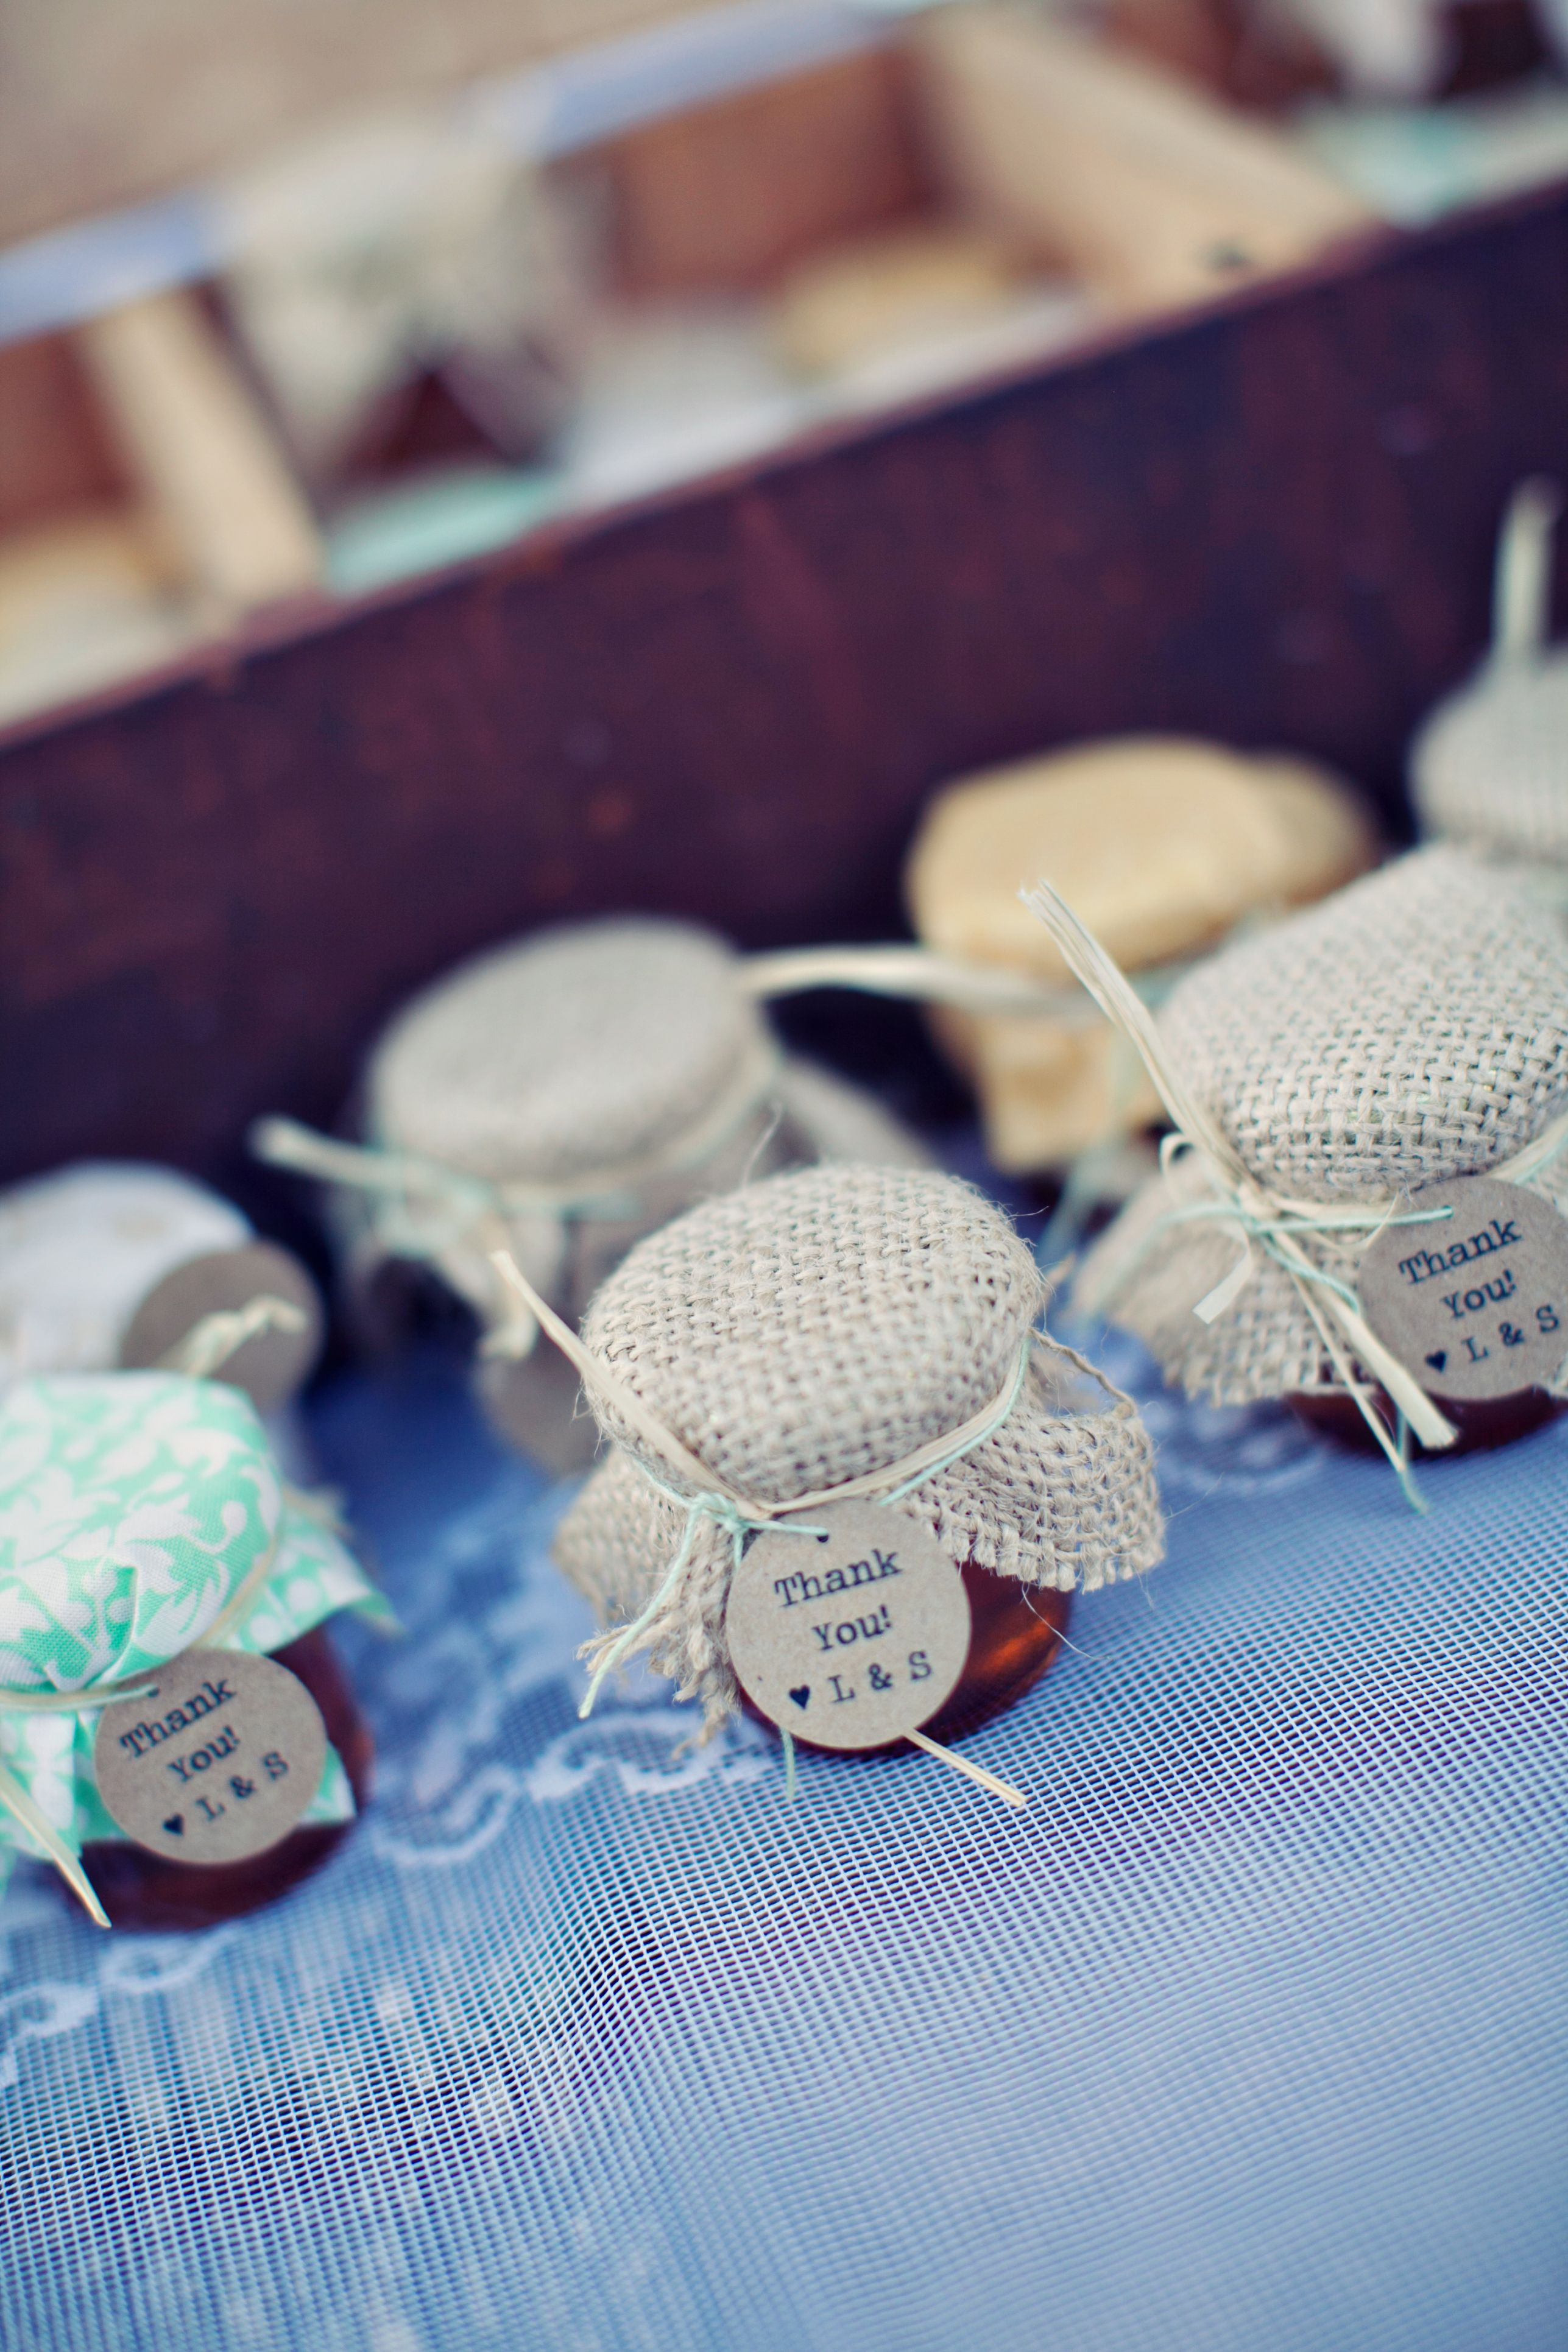 DIY honey jar favors would be so cute with a clothes pin leaf tag